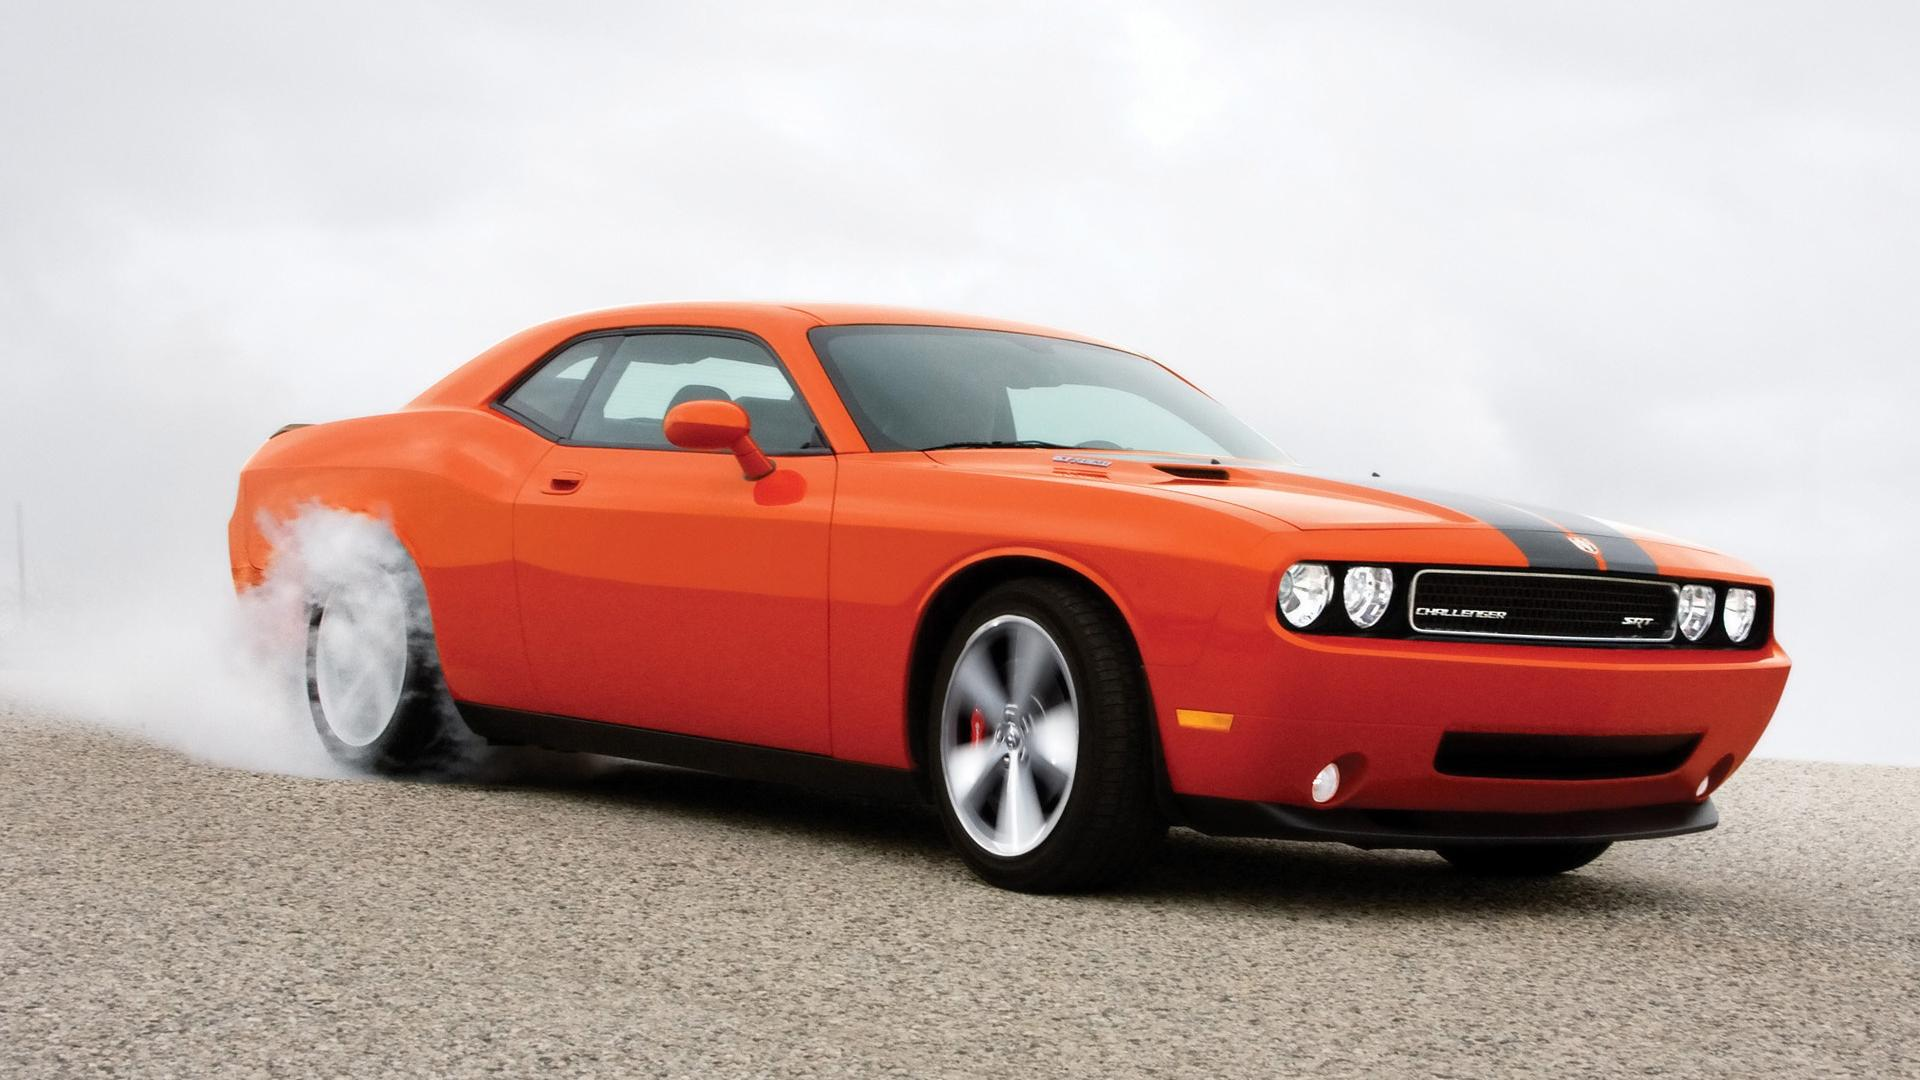 2008 Dodge Challenger Srt8 Burnout Side Angle 1920x1080